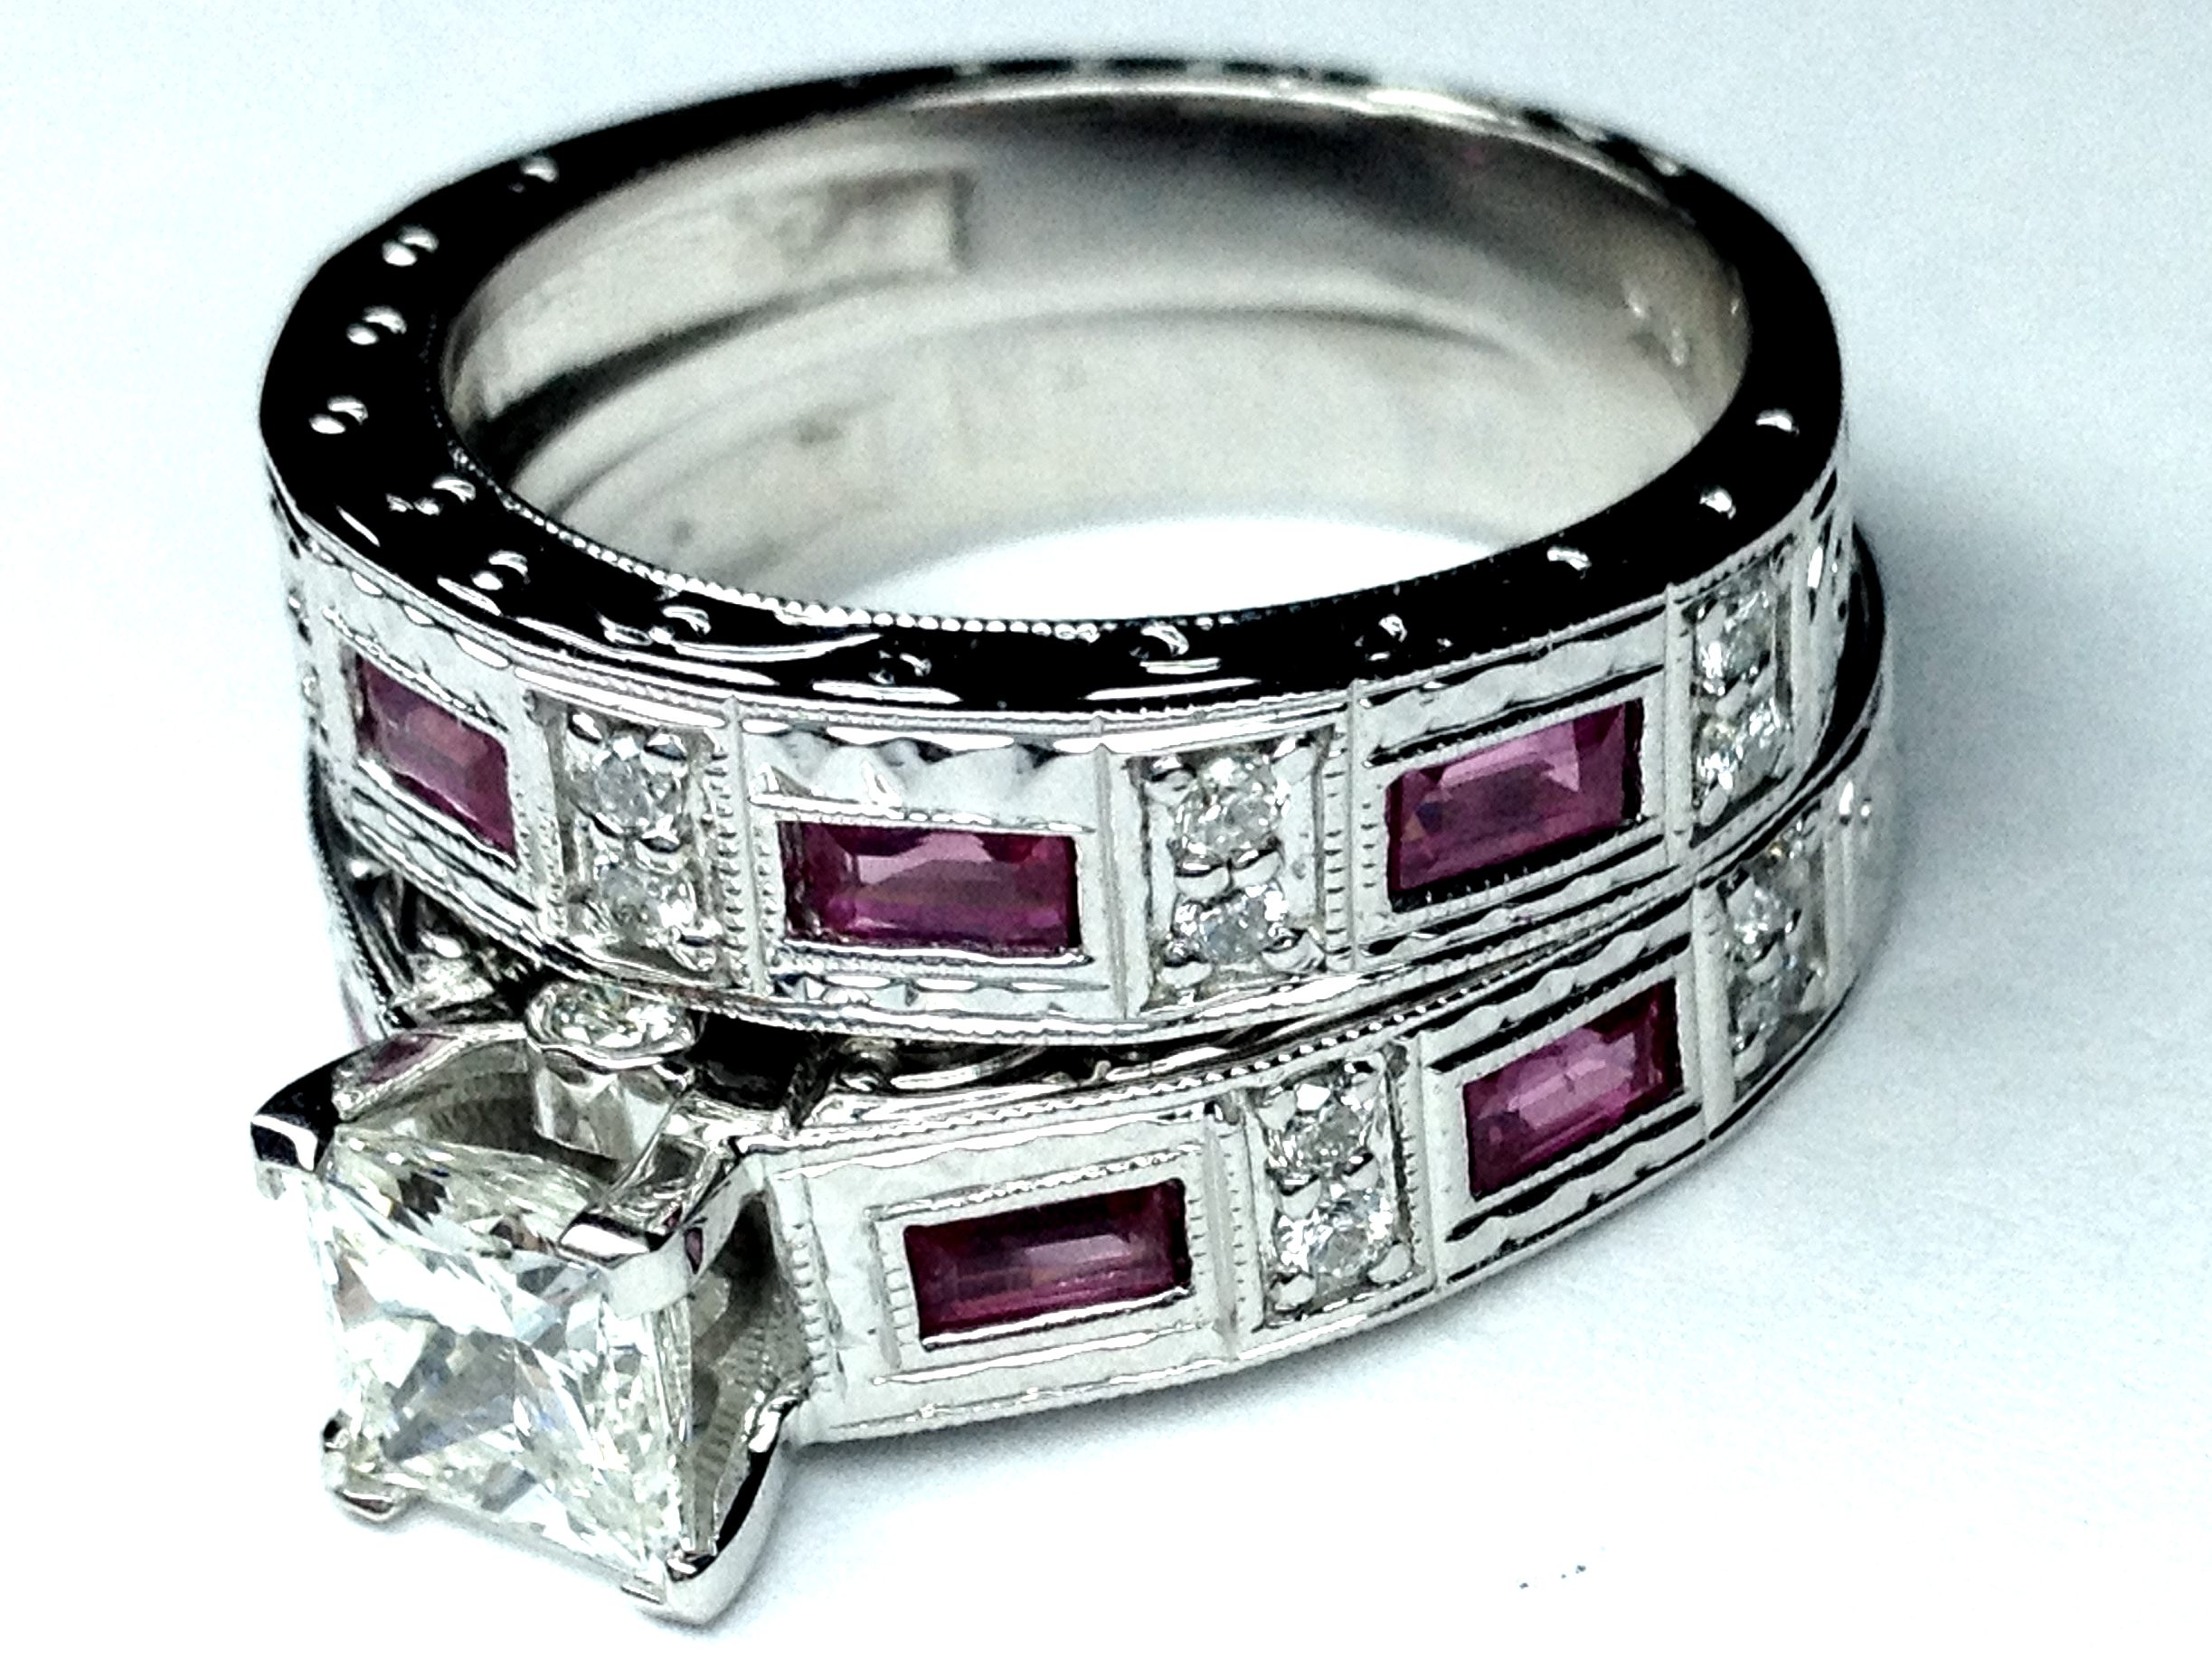 Princess Diamond Vintage Engraved Bridal set engagement Ring & matching wedding band Pink sapphire accents 1.02 tcw